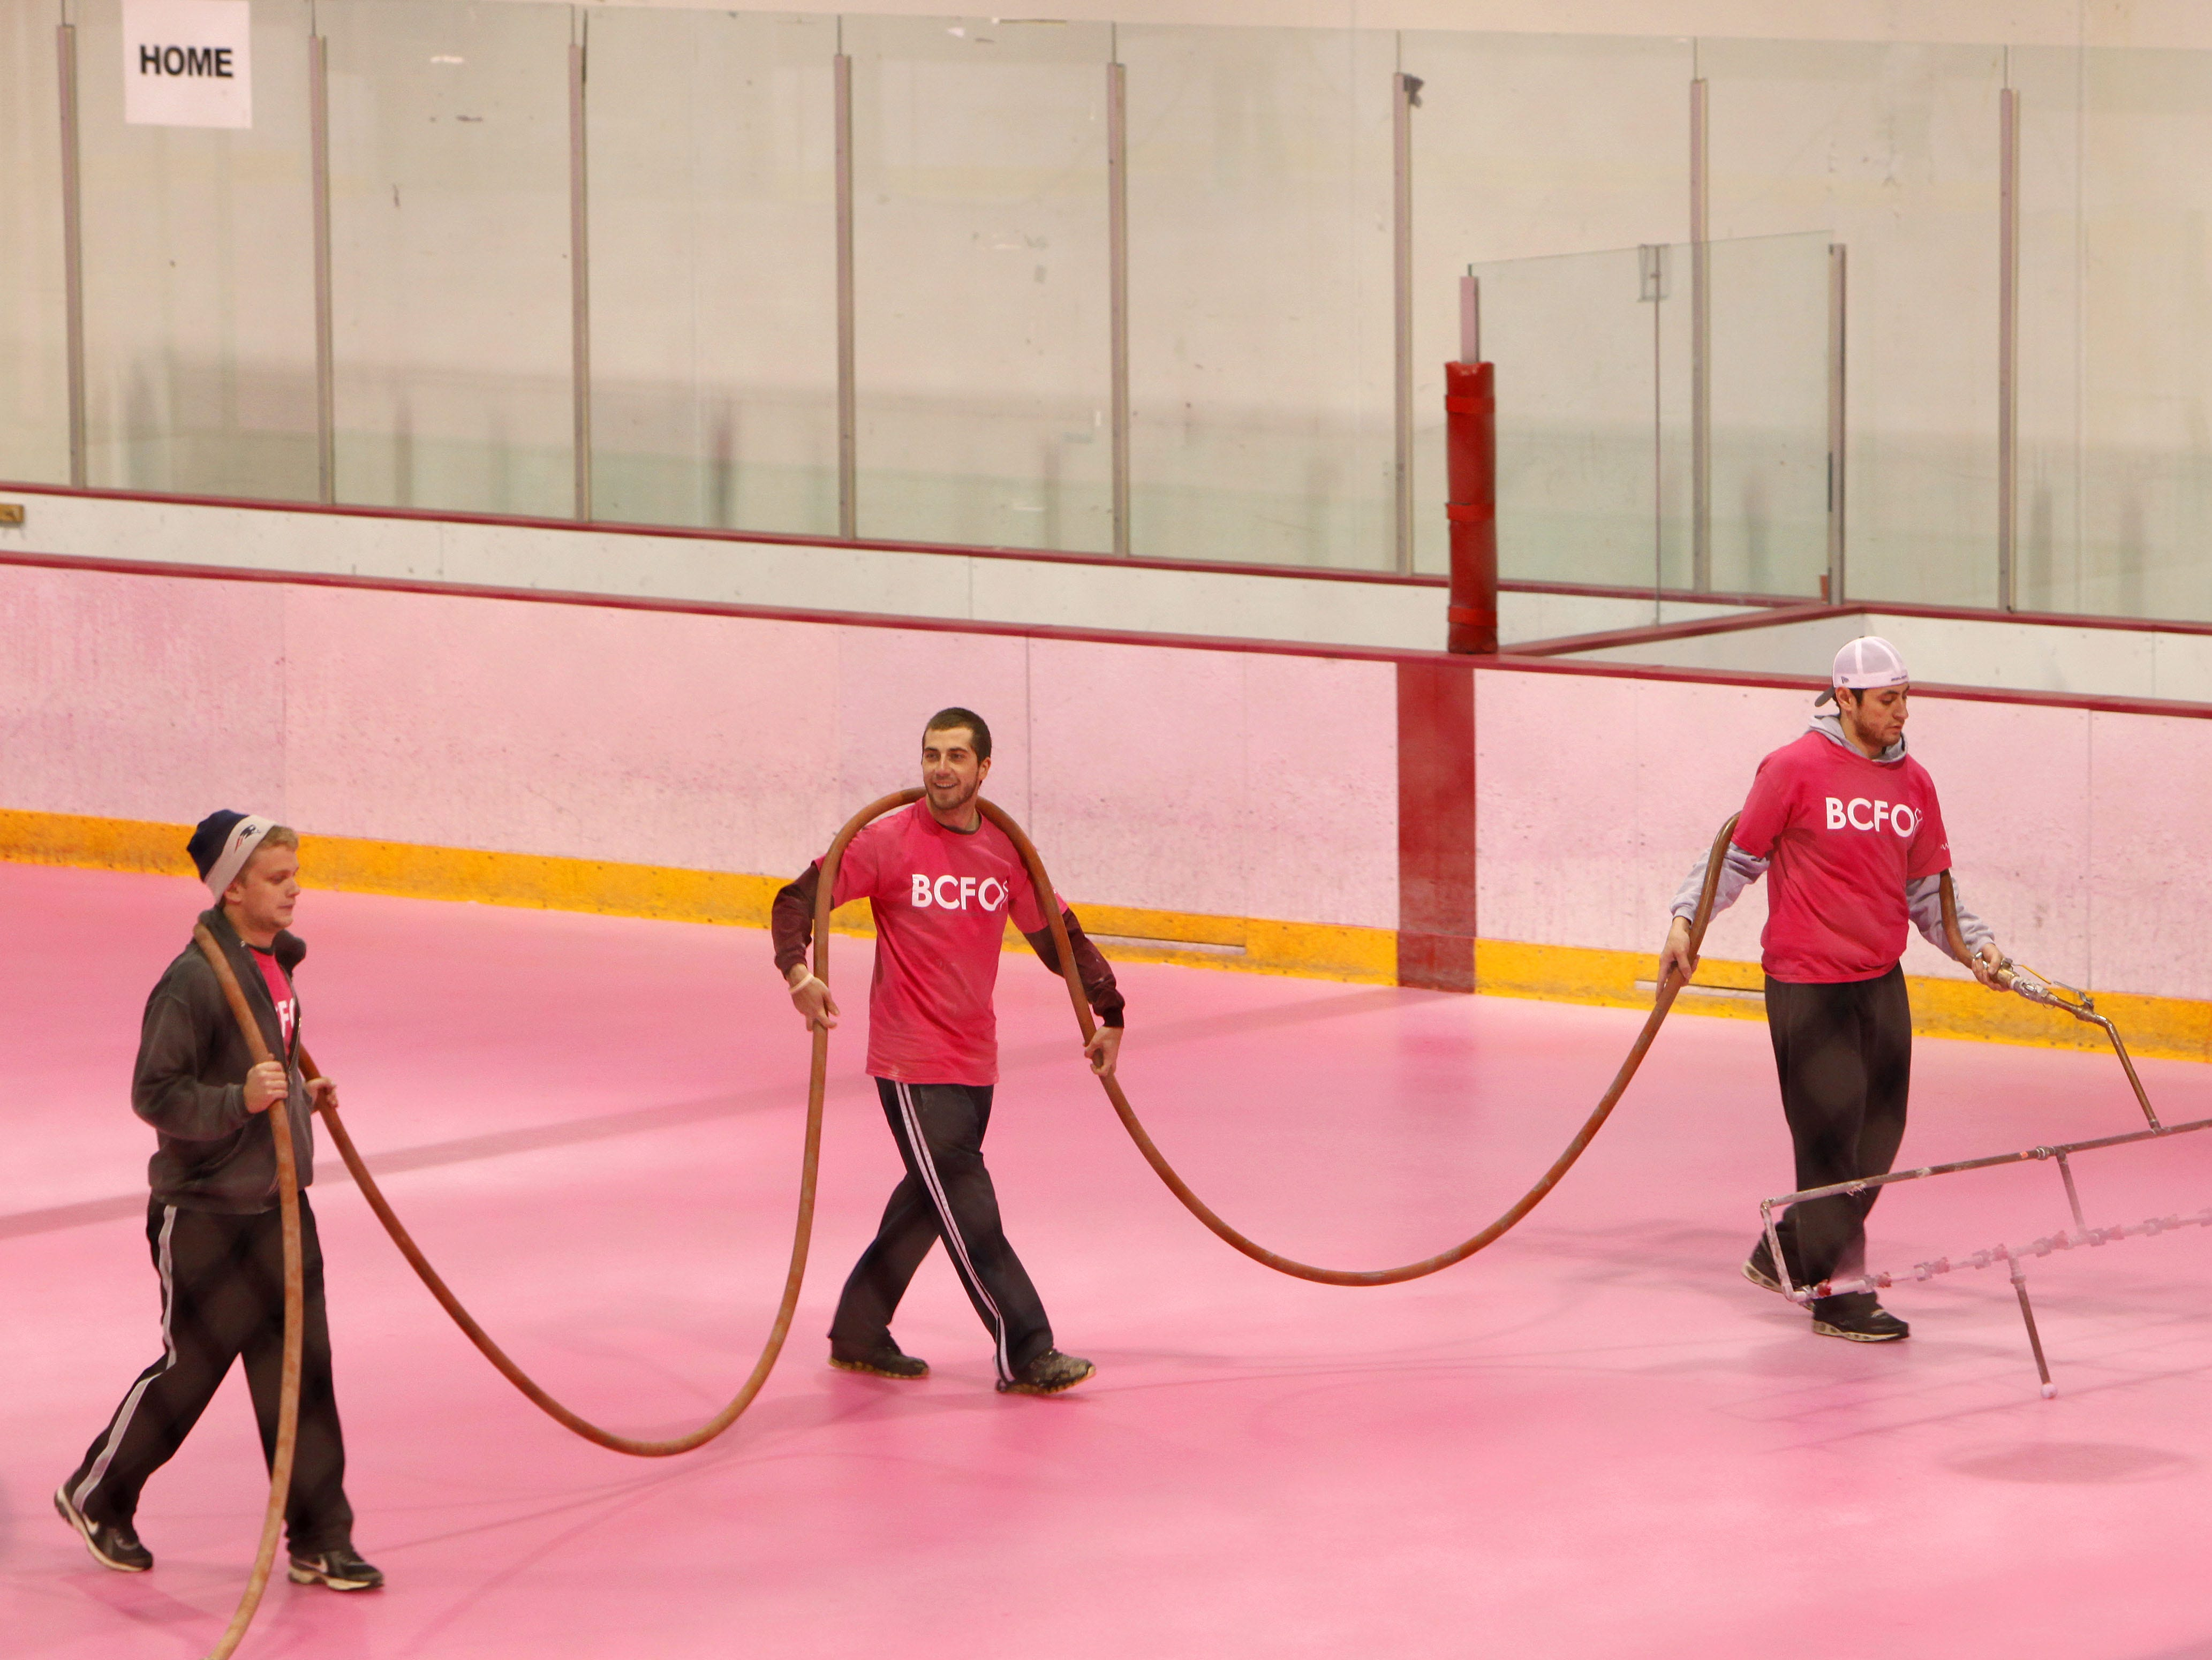 Using a specialized mister, Miguel Franco (right), a manager at the Mediacom Ice Park, paints the ice pink to raise awareness for breast cancer.